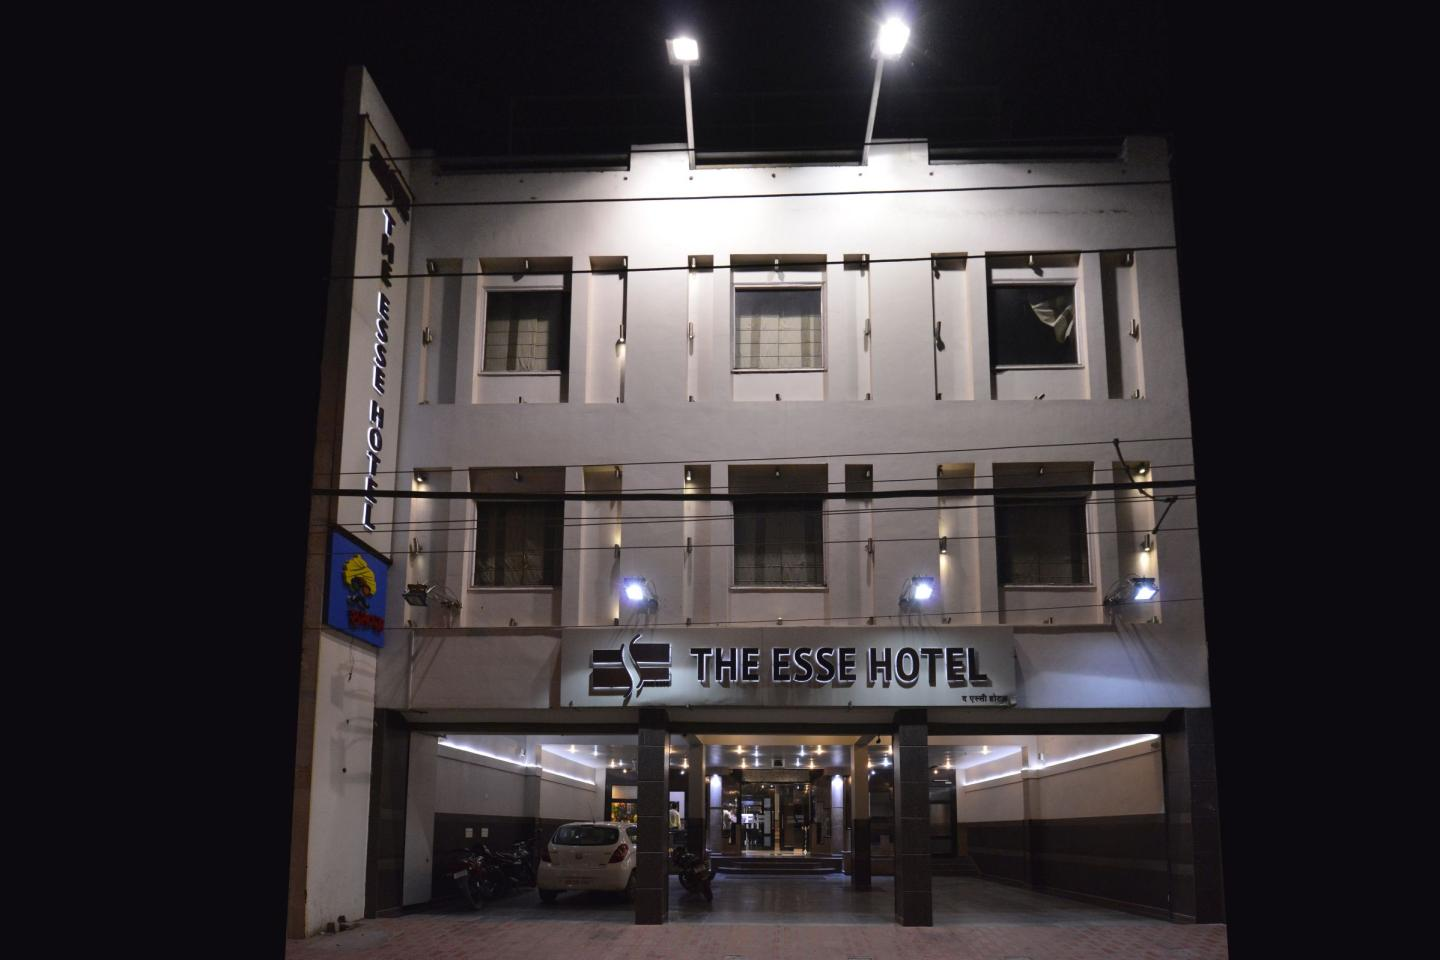 The Esse Hotel in hisar